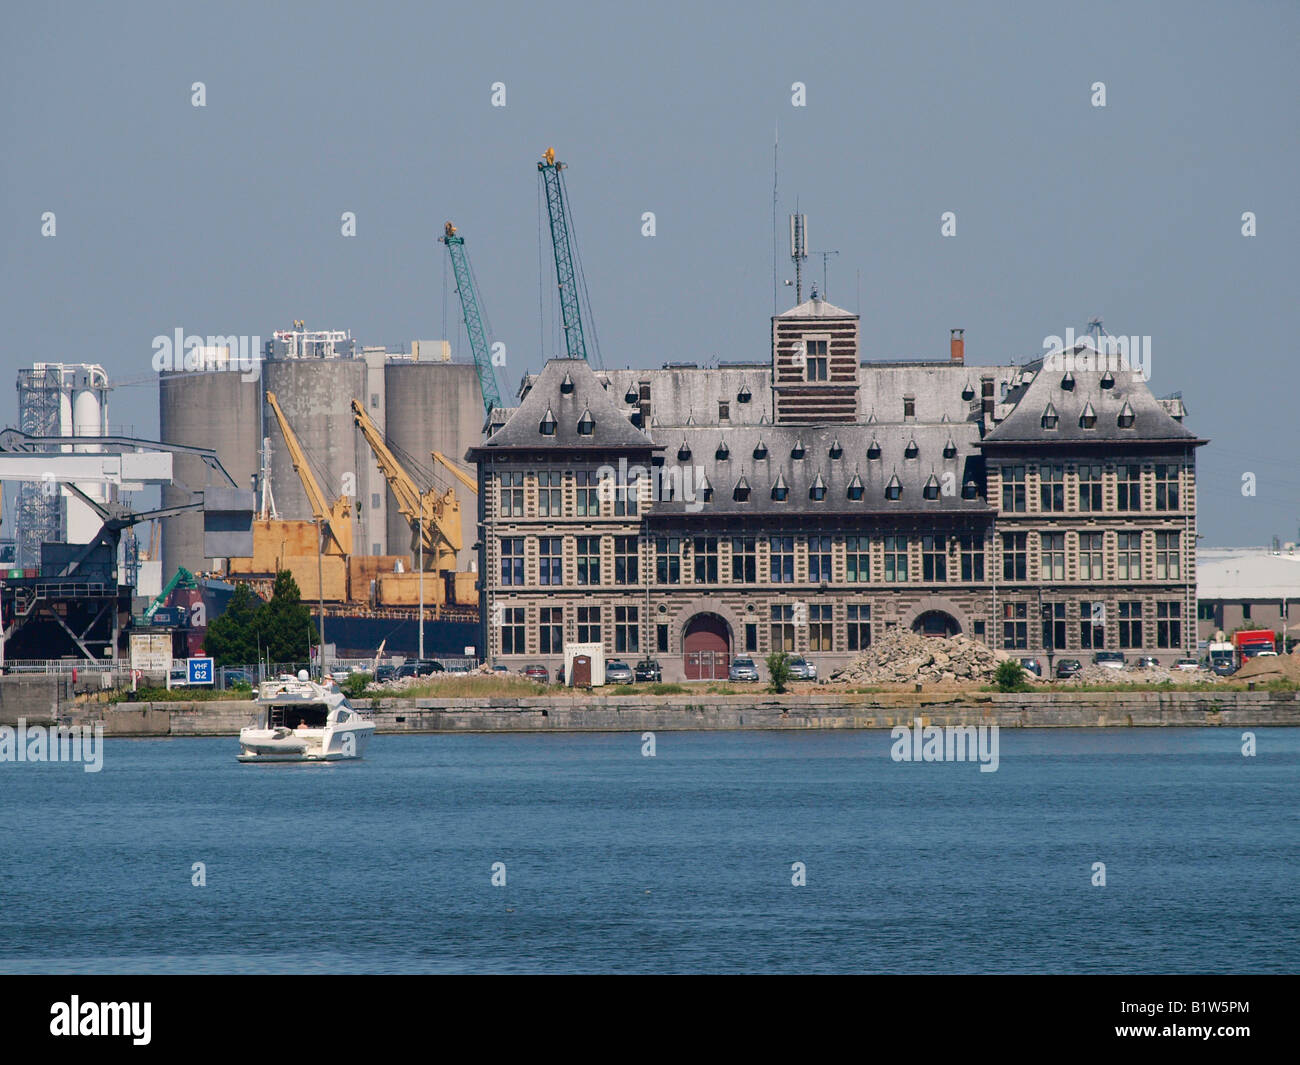 Antwerp port authority building in neo renaissance style north of the Kattendijkdok dock Antwerp Flanders Belgium - Stock Image